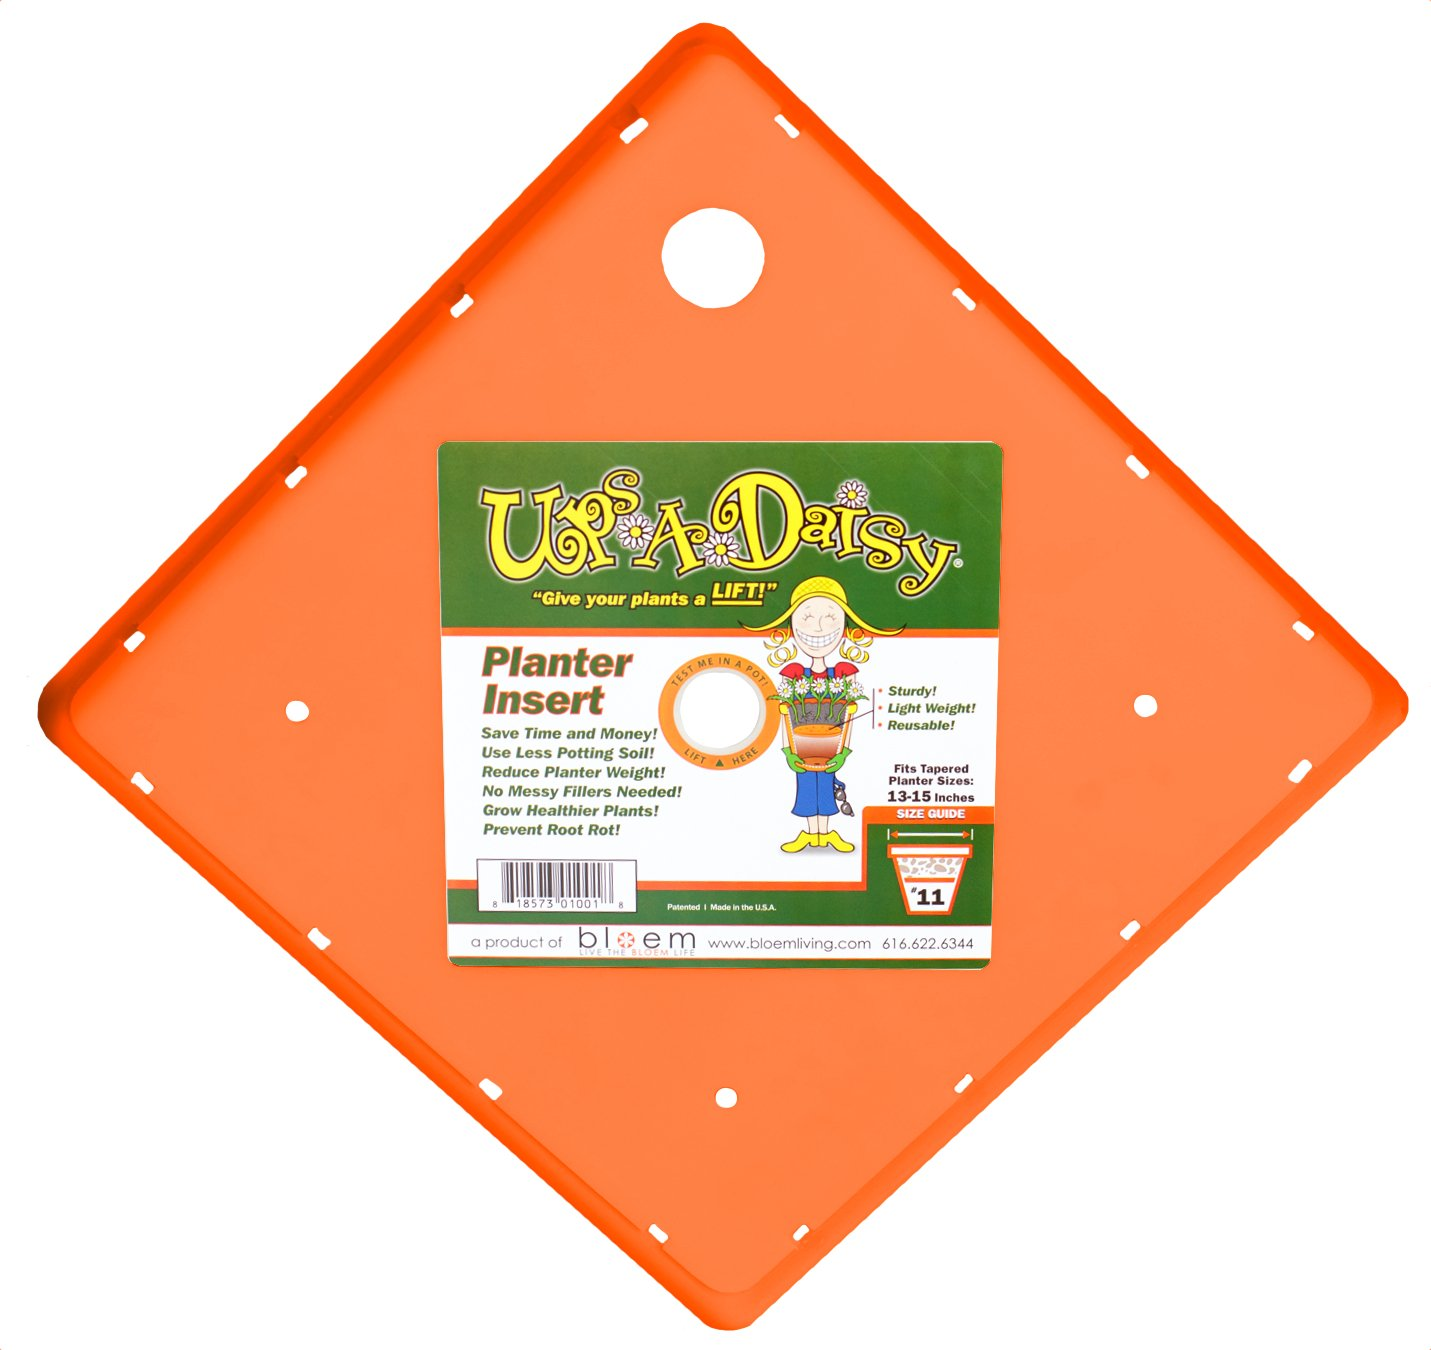 Bloem TS6322-12 Square Ups-A-Daisy Planter Insert, 12-Inch, 12-Pack